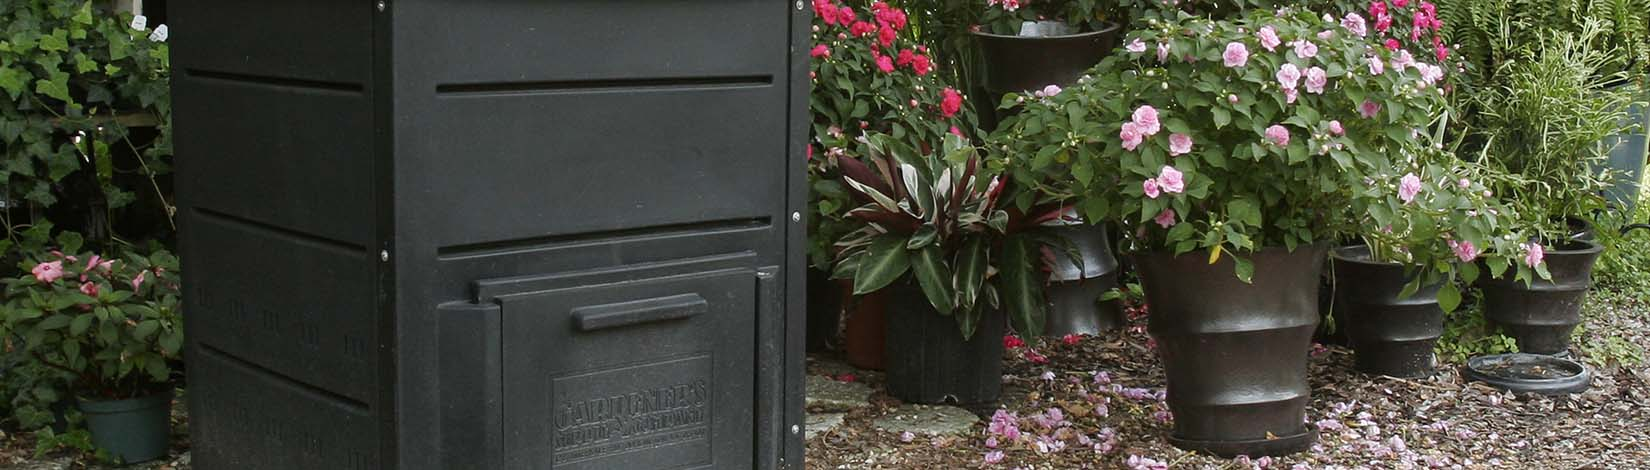 Composter in a garden for vermicomposting